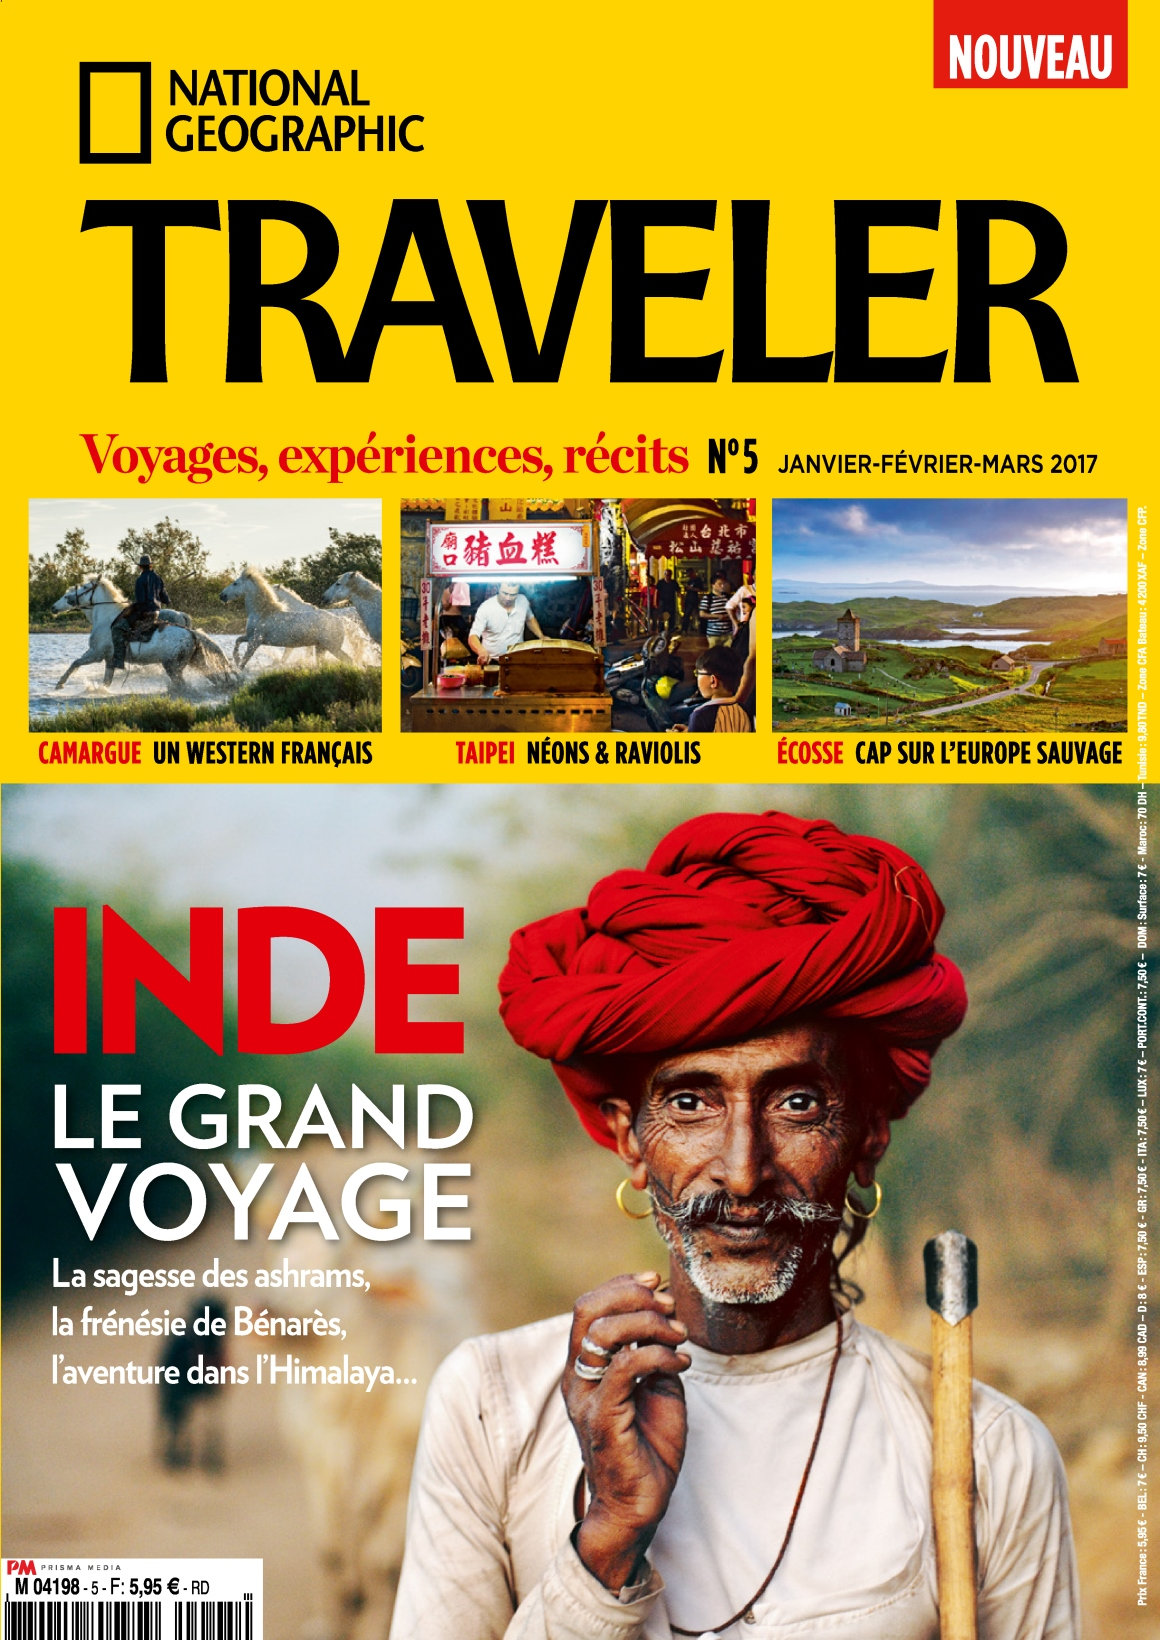 National Geographic Traveler N°5 - Janvier/Mars 2017